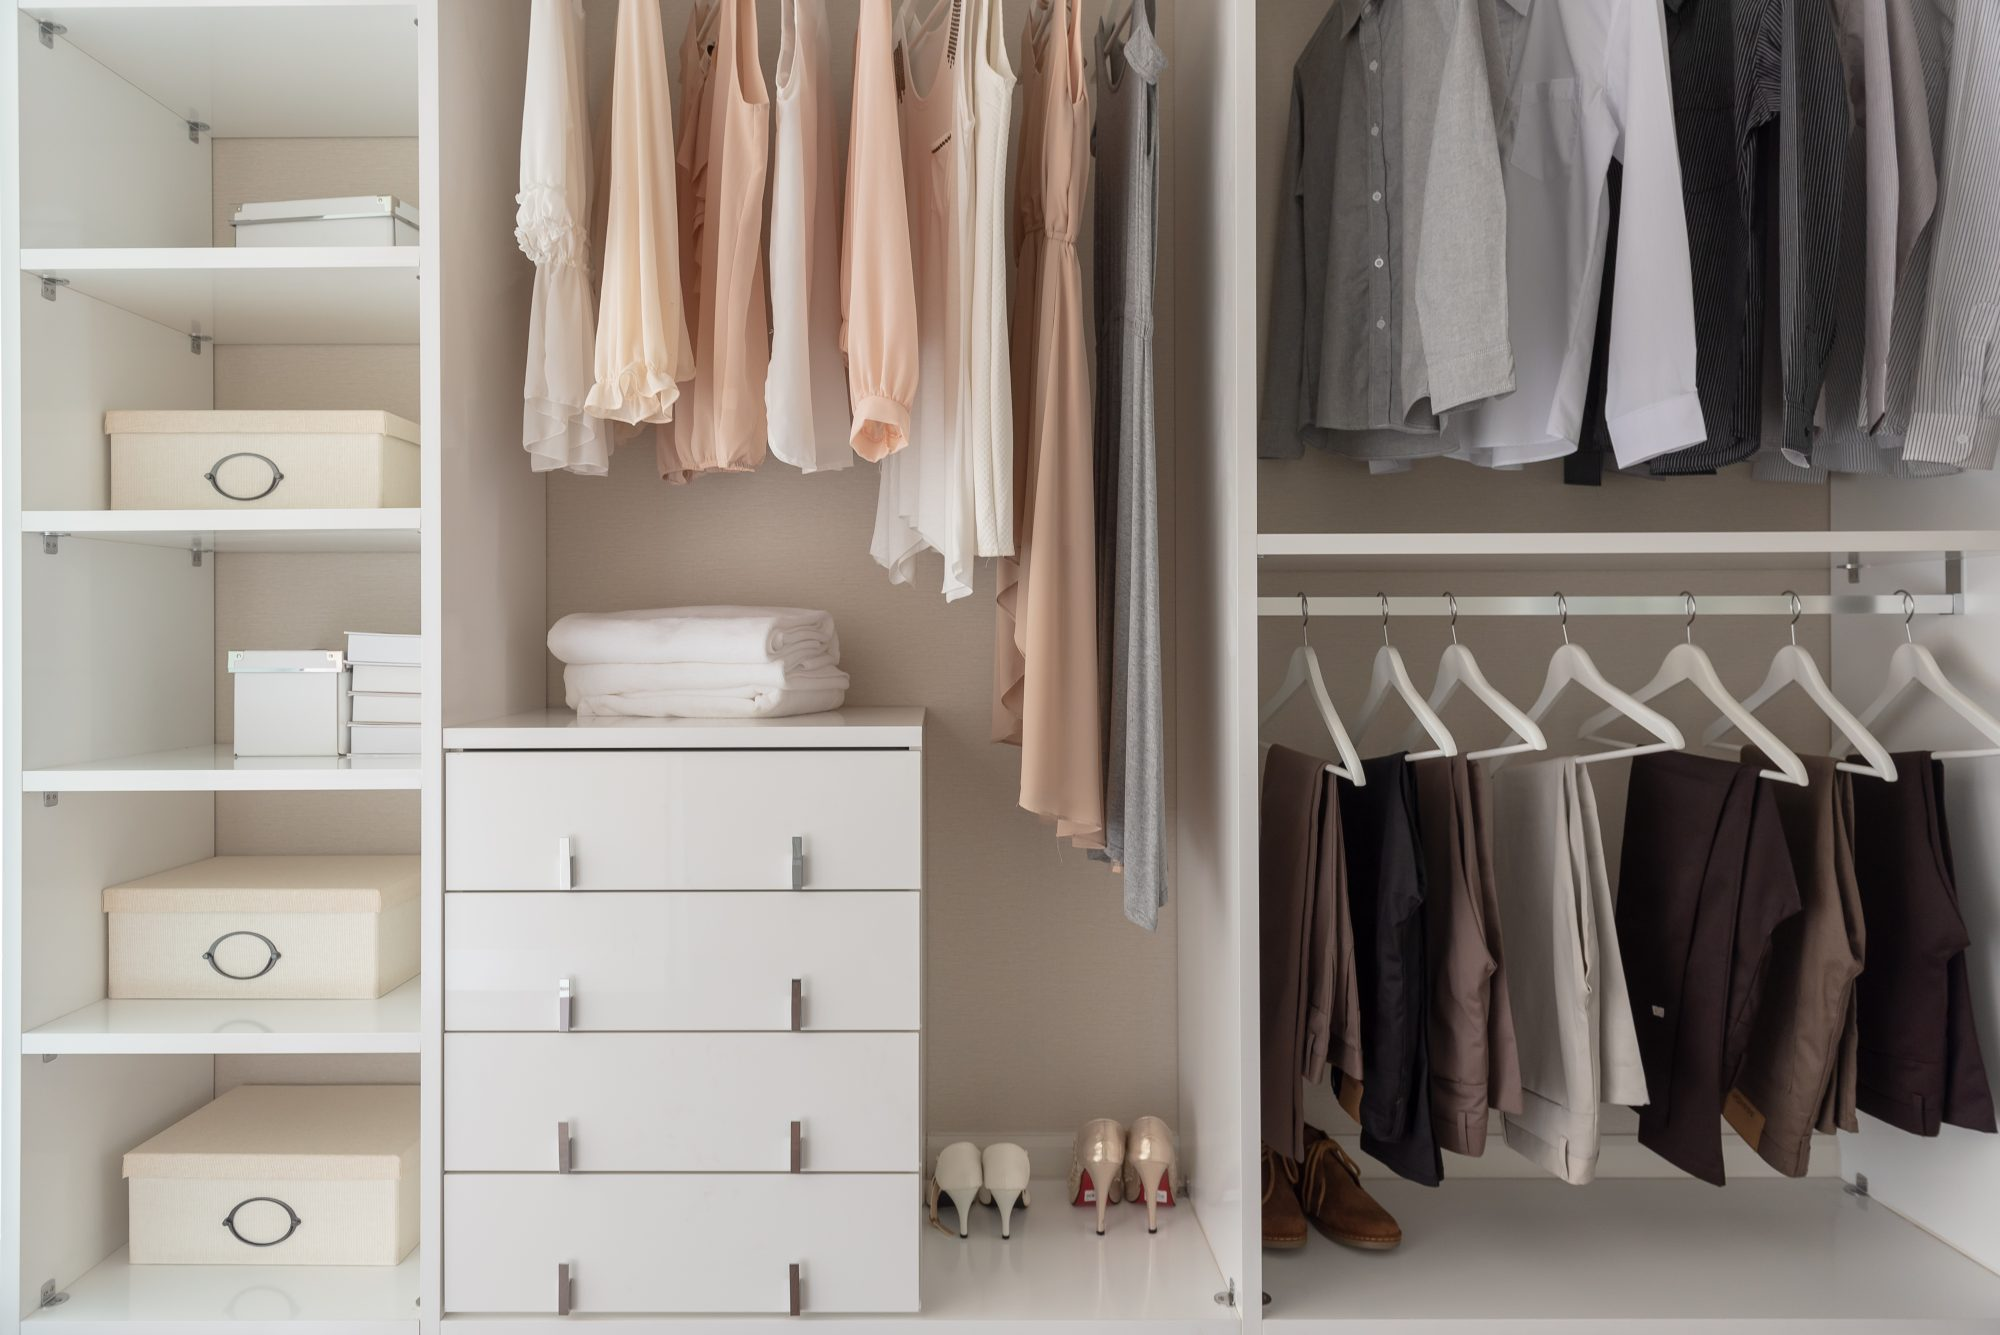 7 Commandments of Closet Organizing That Will Help You Get Dressed Faster